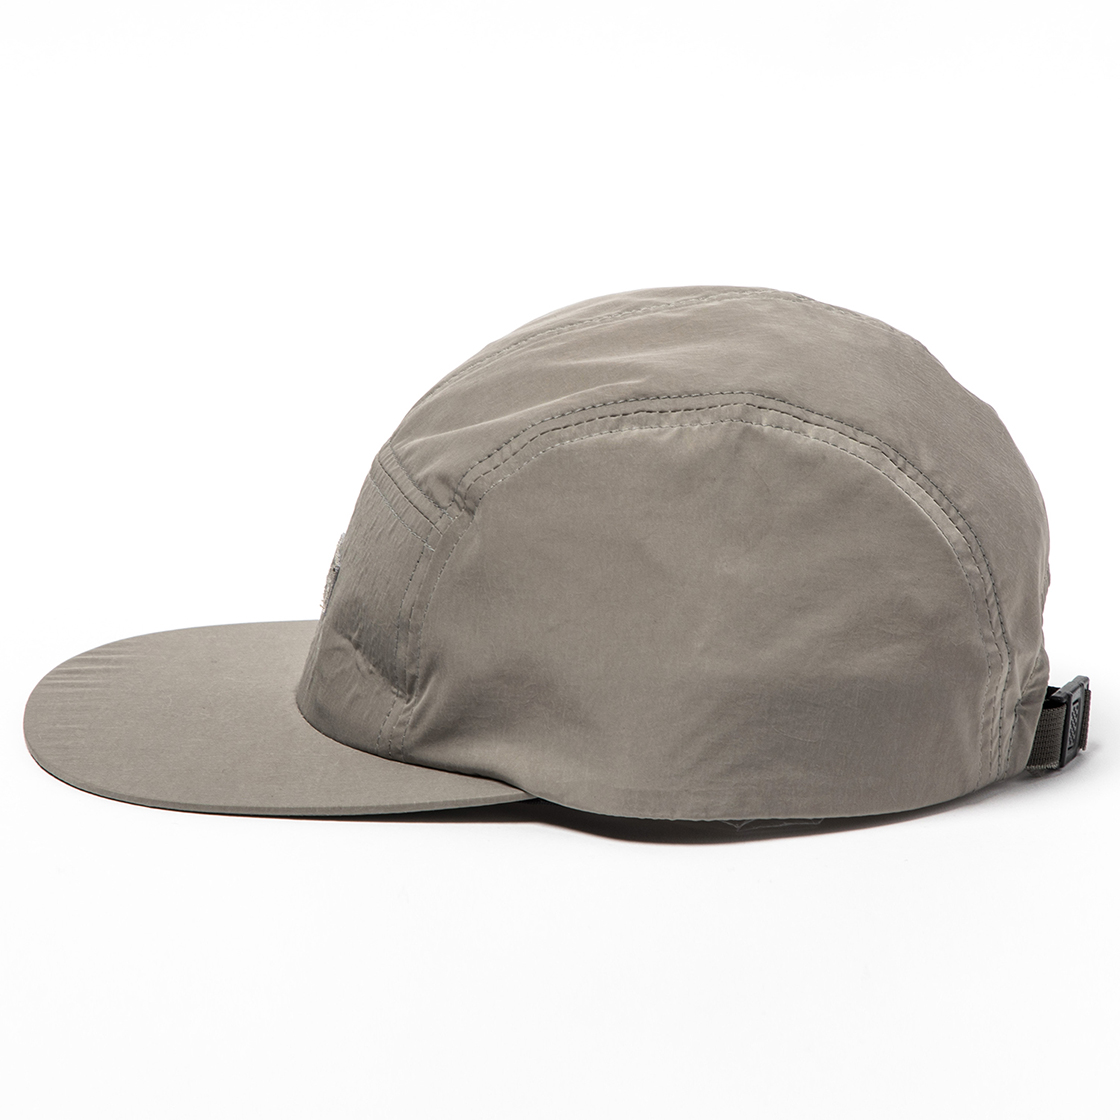 Nylon Jet Cap Grey